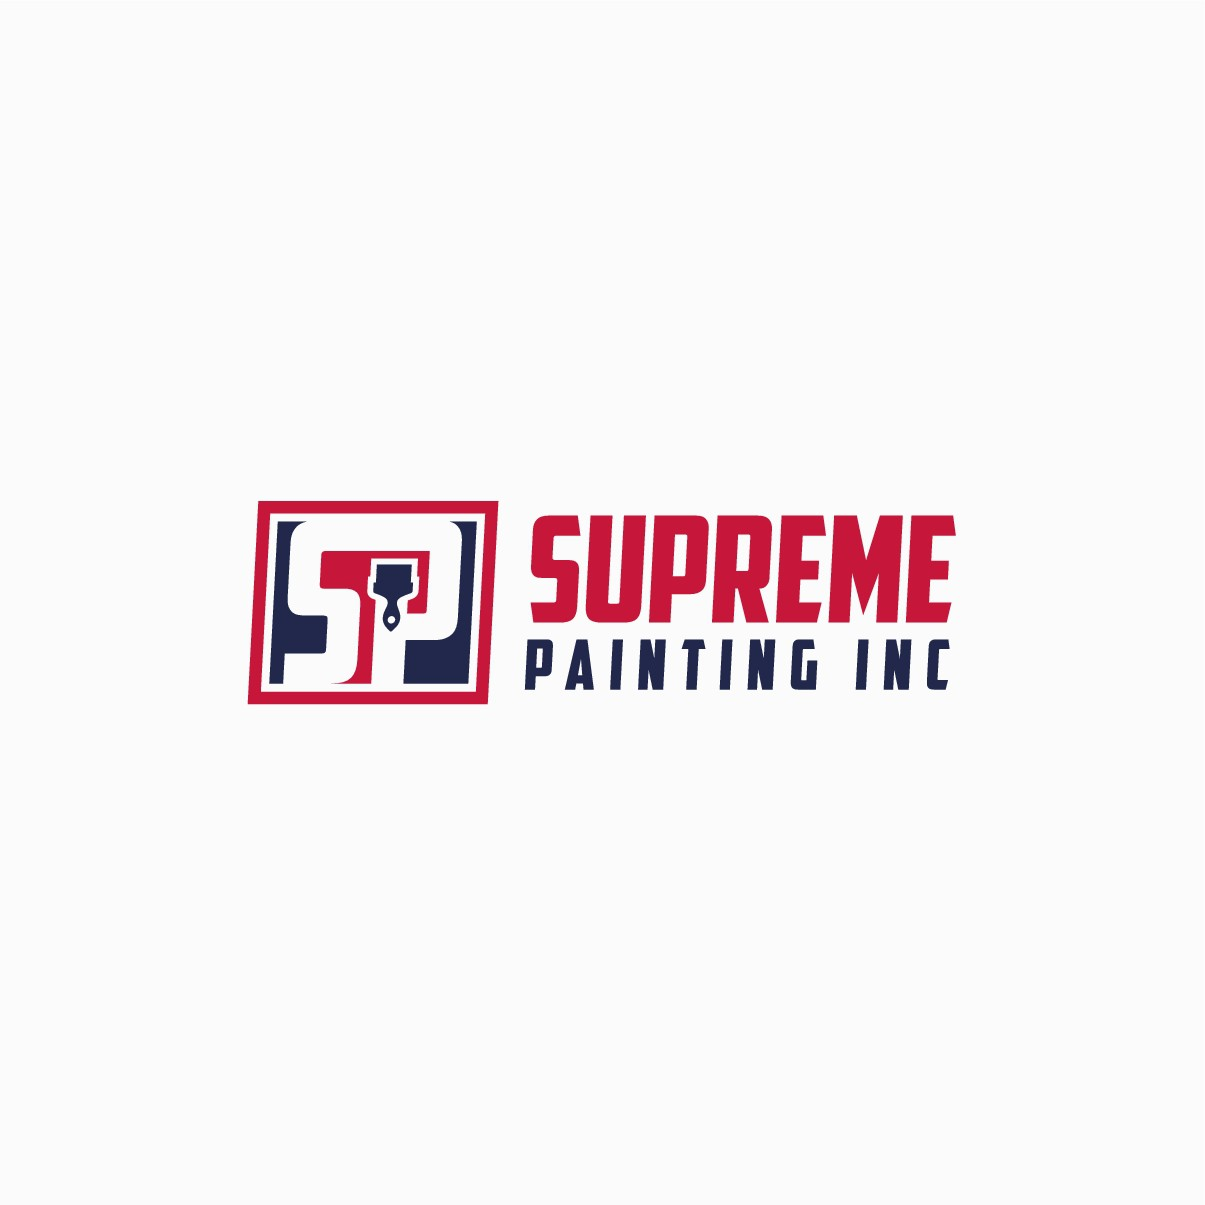 Supreme Painting Inc Logo